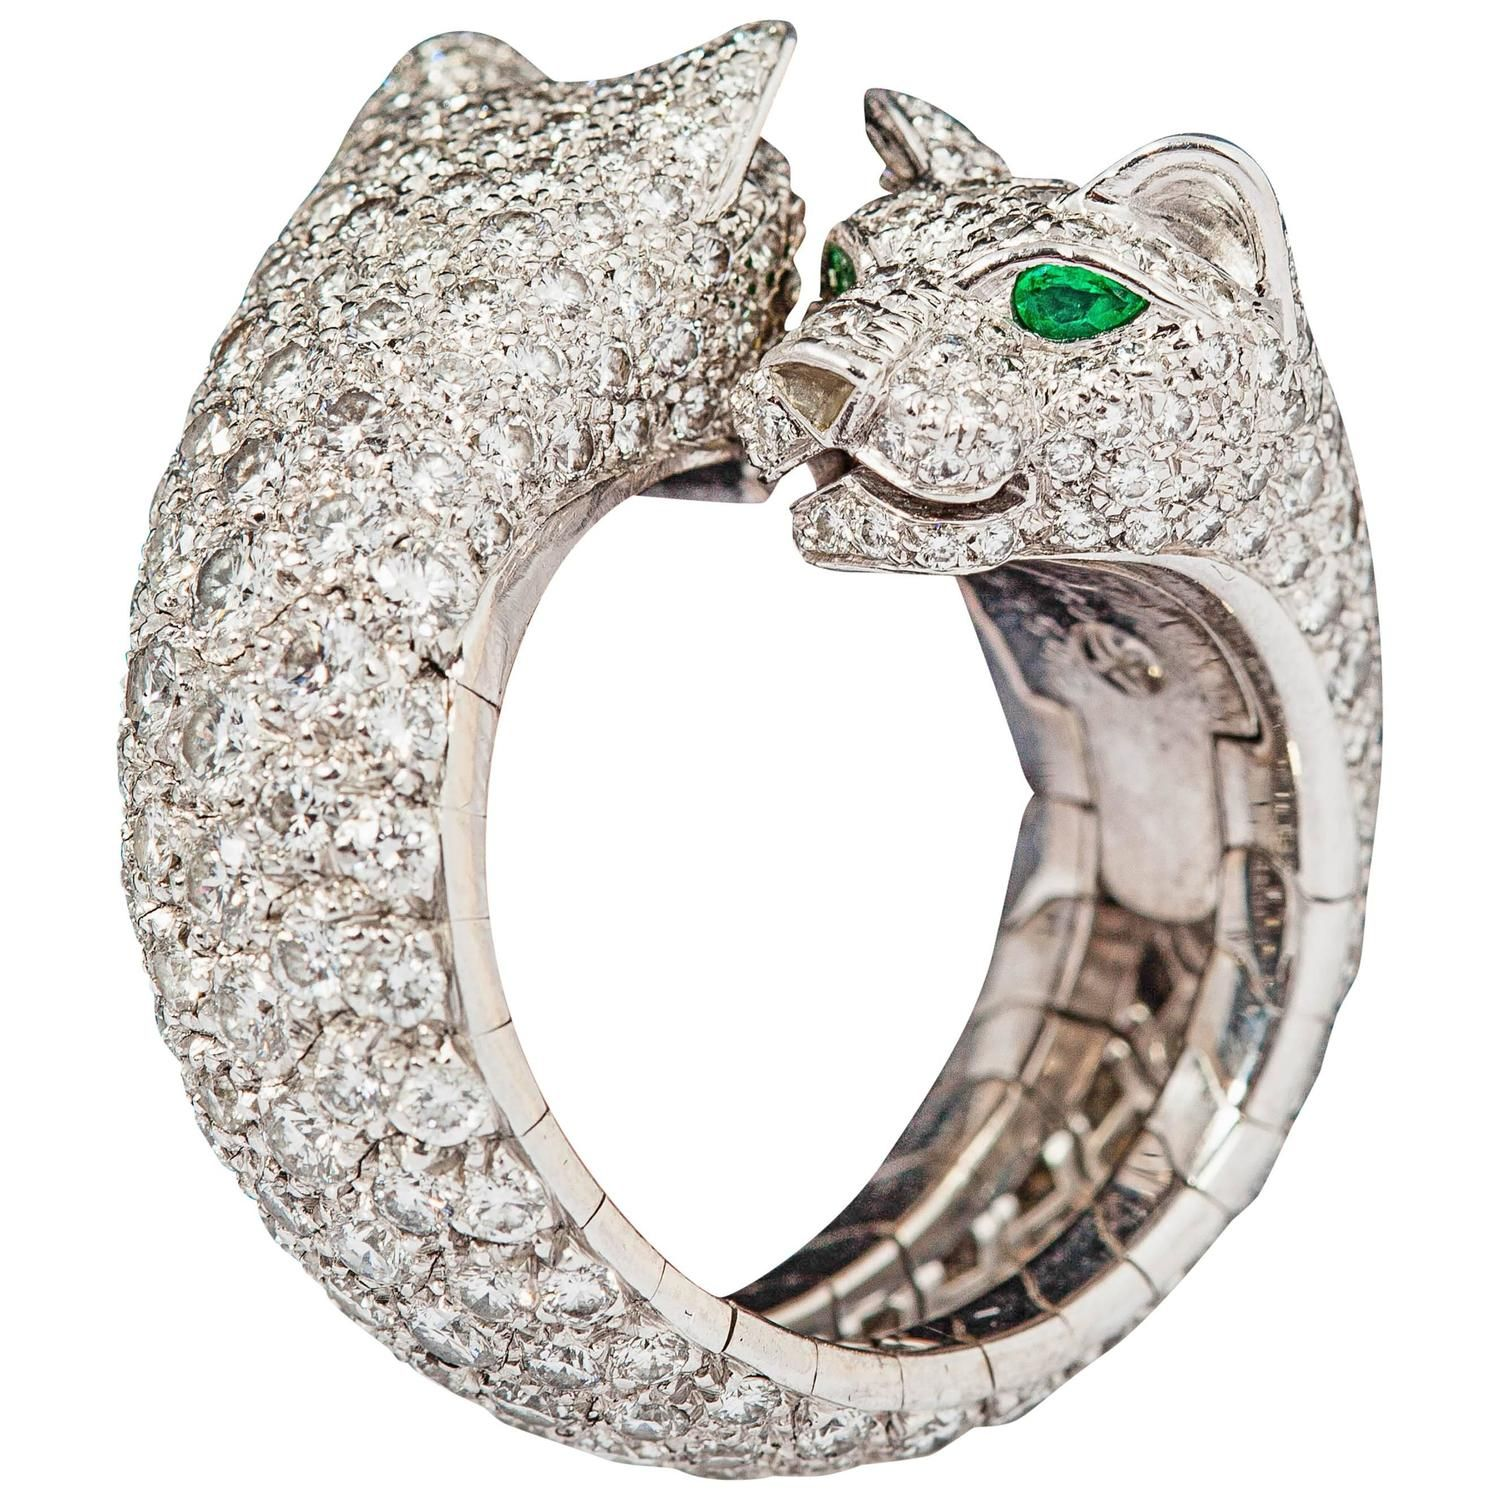 917fe08720be4 Cartier Stunning double panther emerald diamond gold ring | Jewelry ...